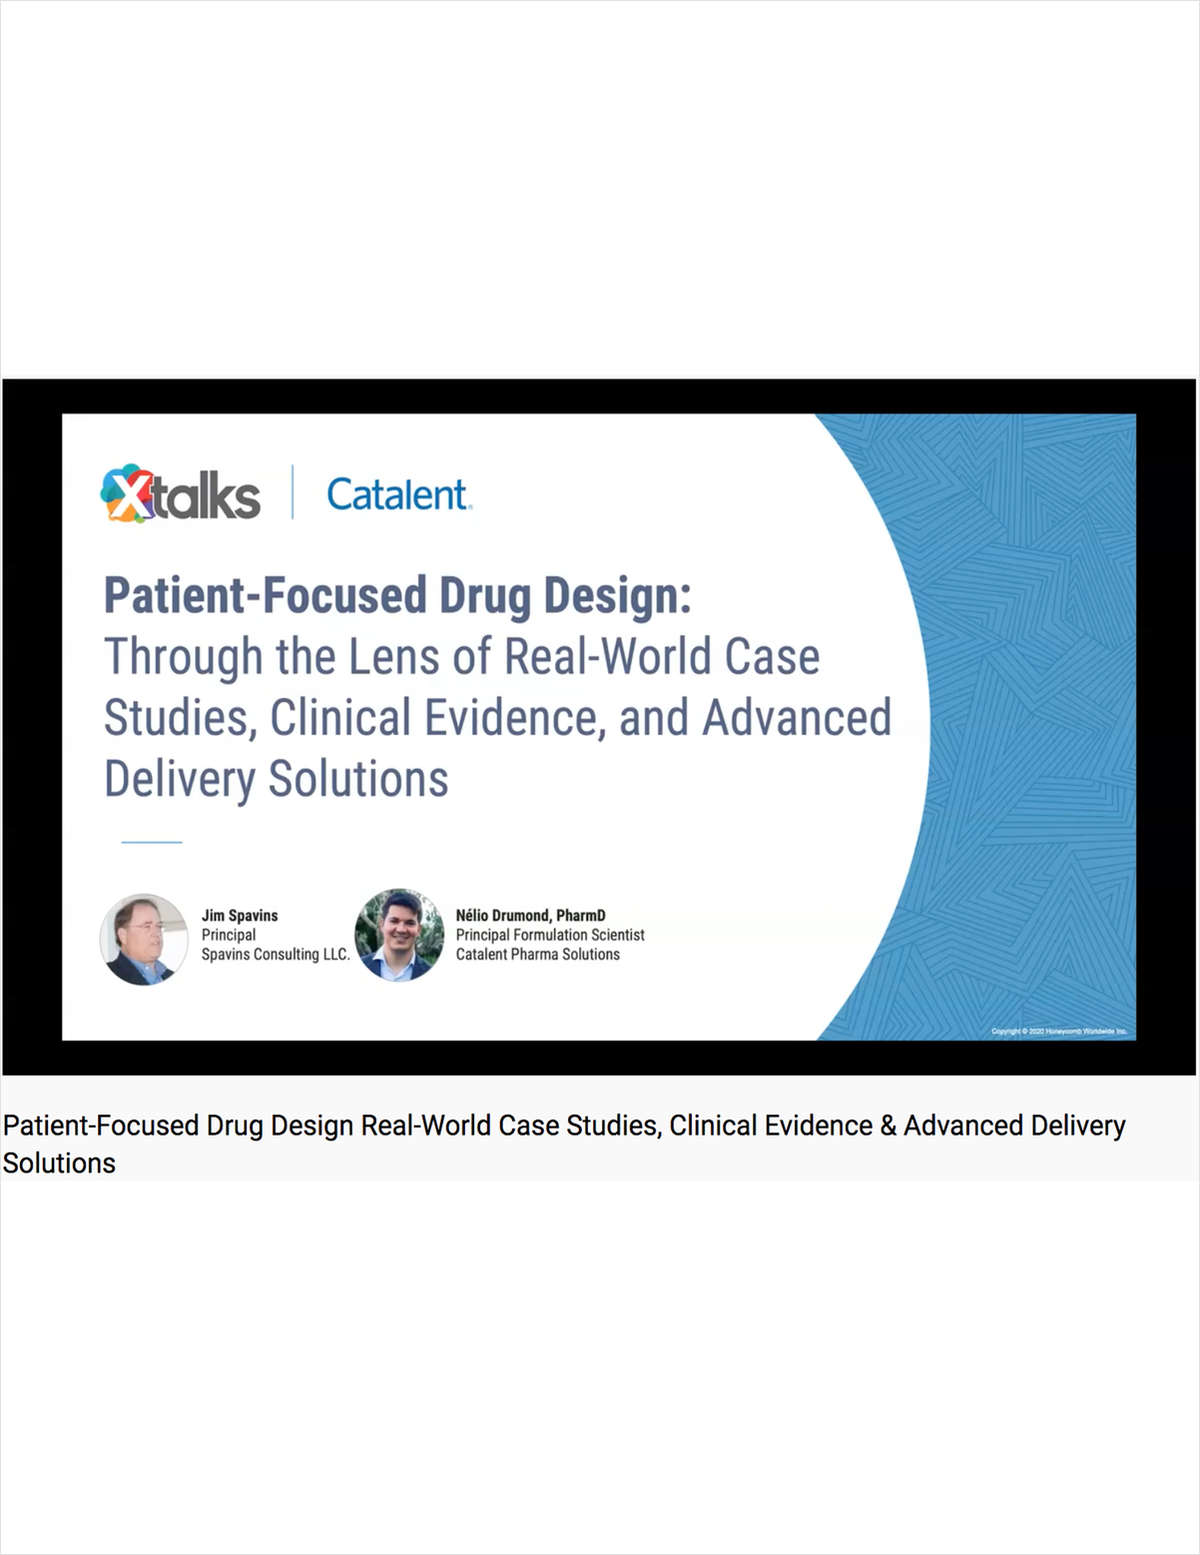 Patient-Focused Drug Design- Through the Lens of Real-World Case Studies, Clinical Evidence and Advanced Delivery Solutions